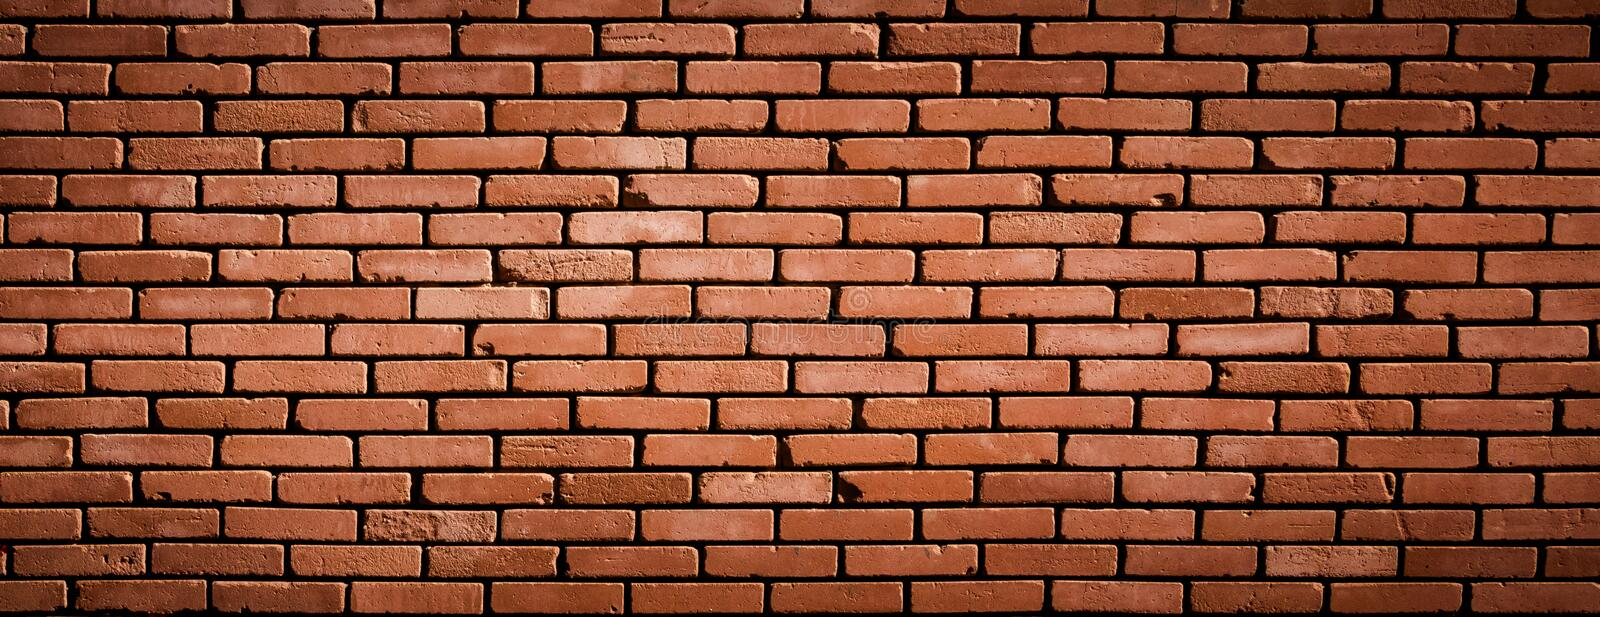 Wide Angle Old Red Brick Wall Background royalty free stock image